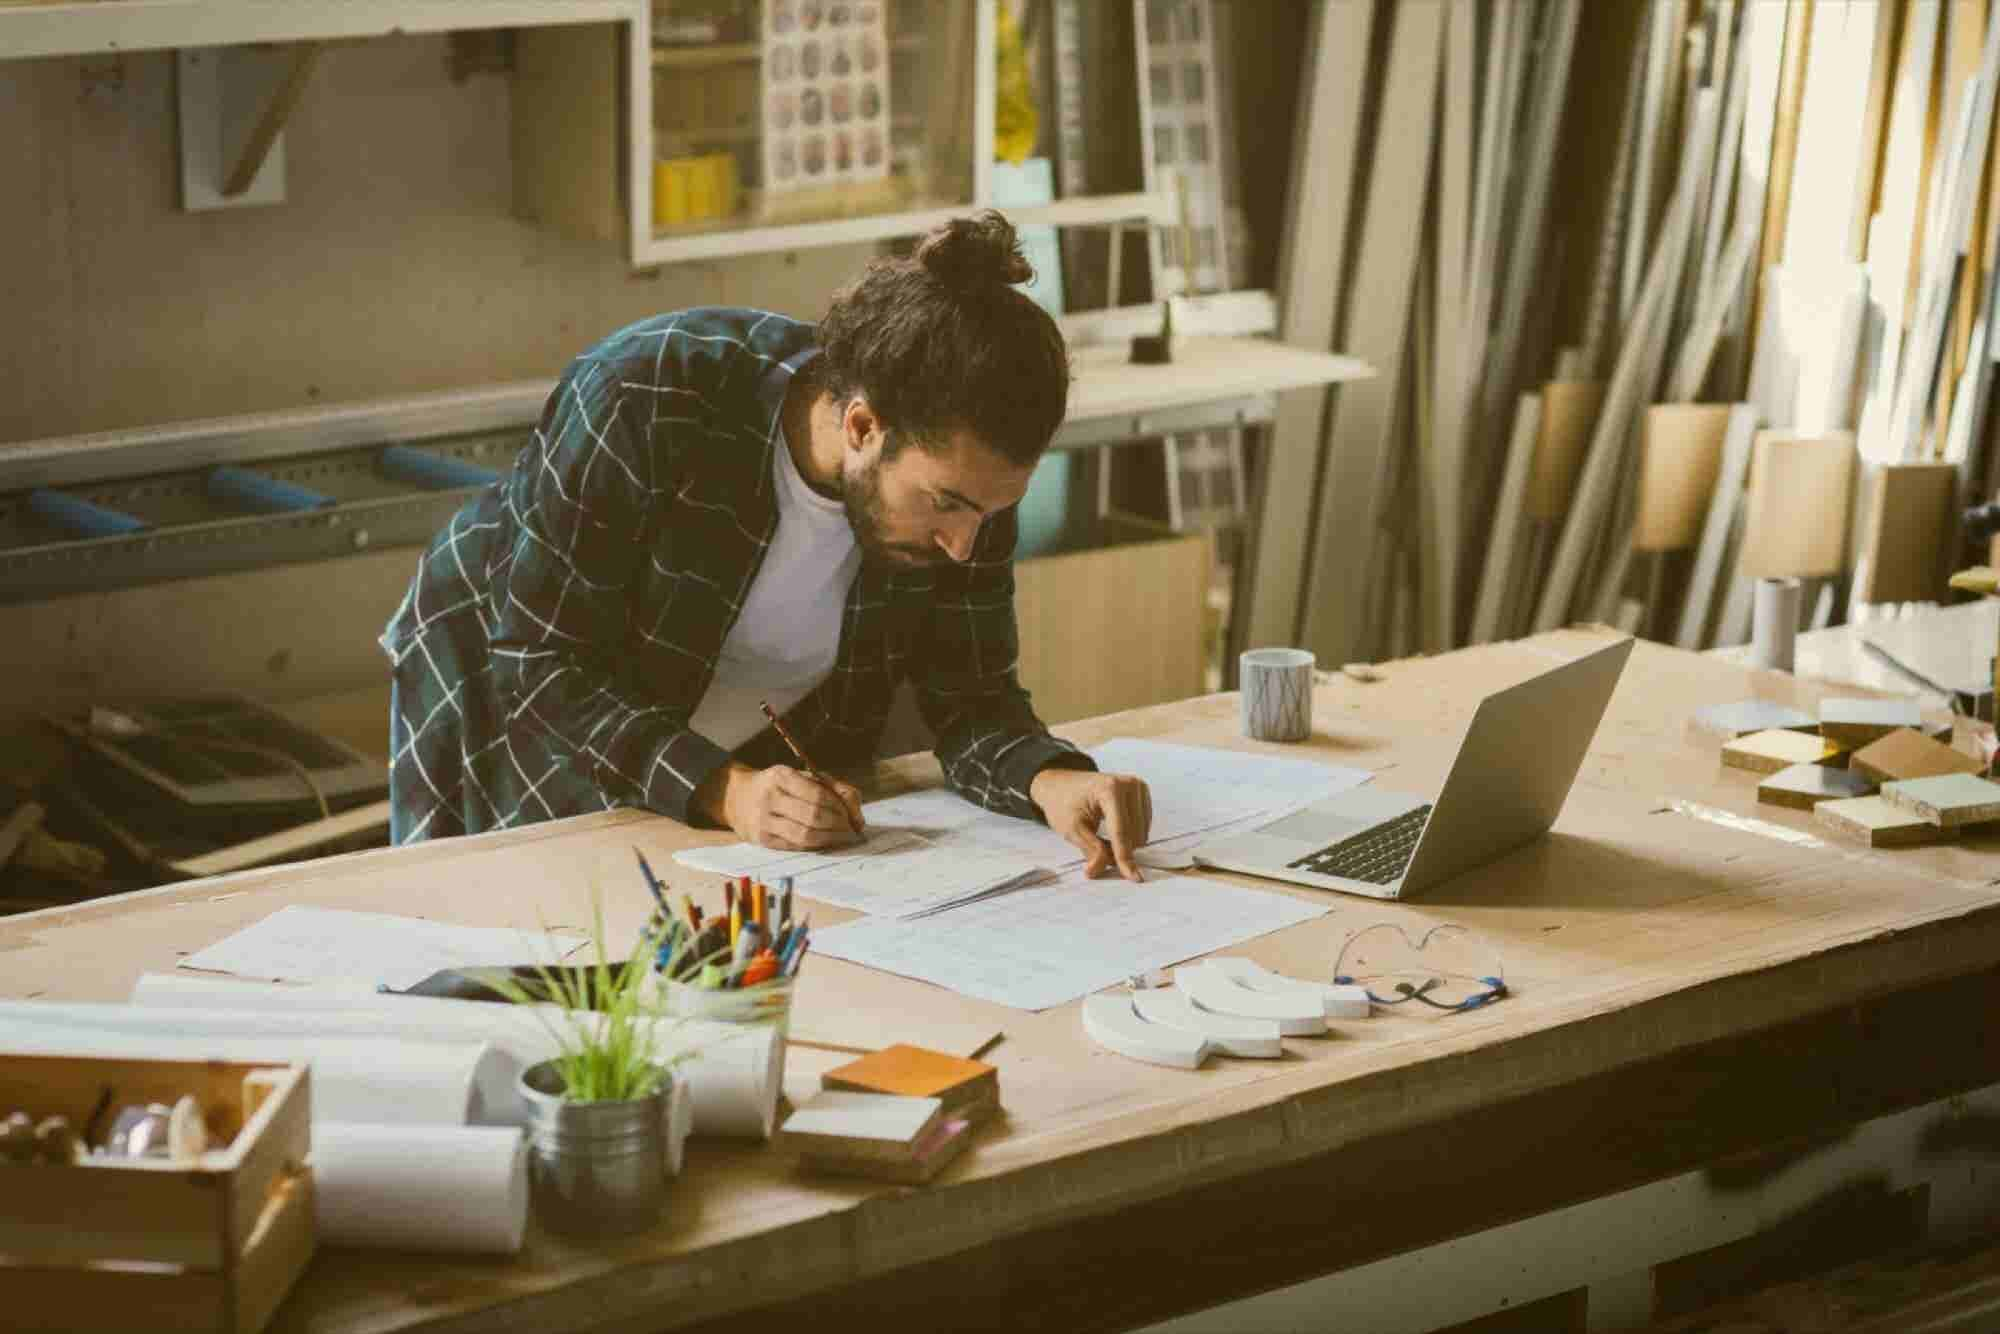 What You'll Give Up When You Start a Small Business